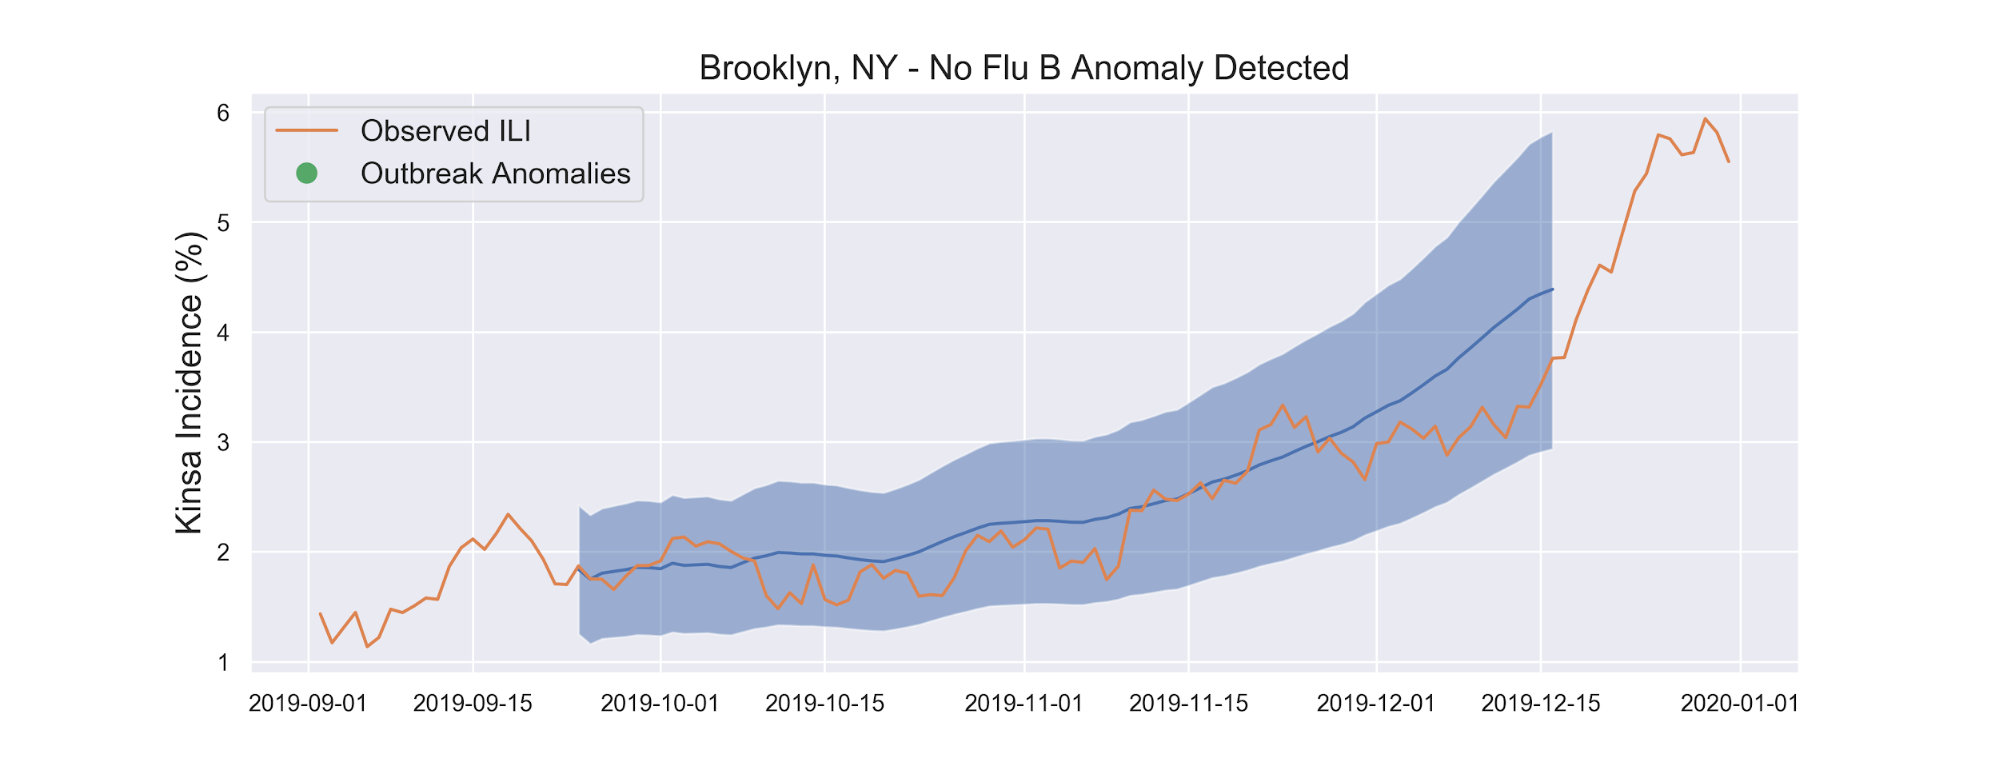 Brooklyn, NY - No Flu B Anomaly Detected